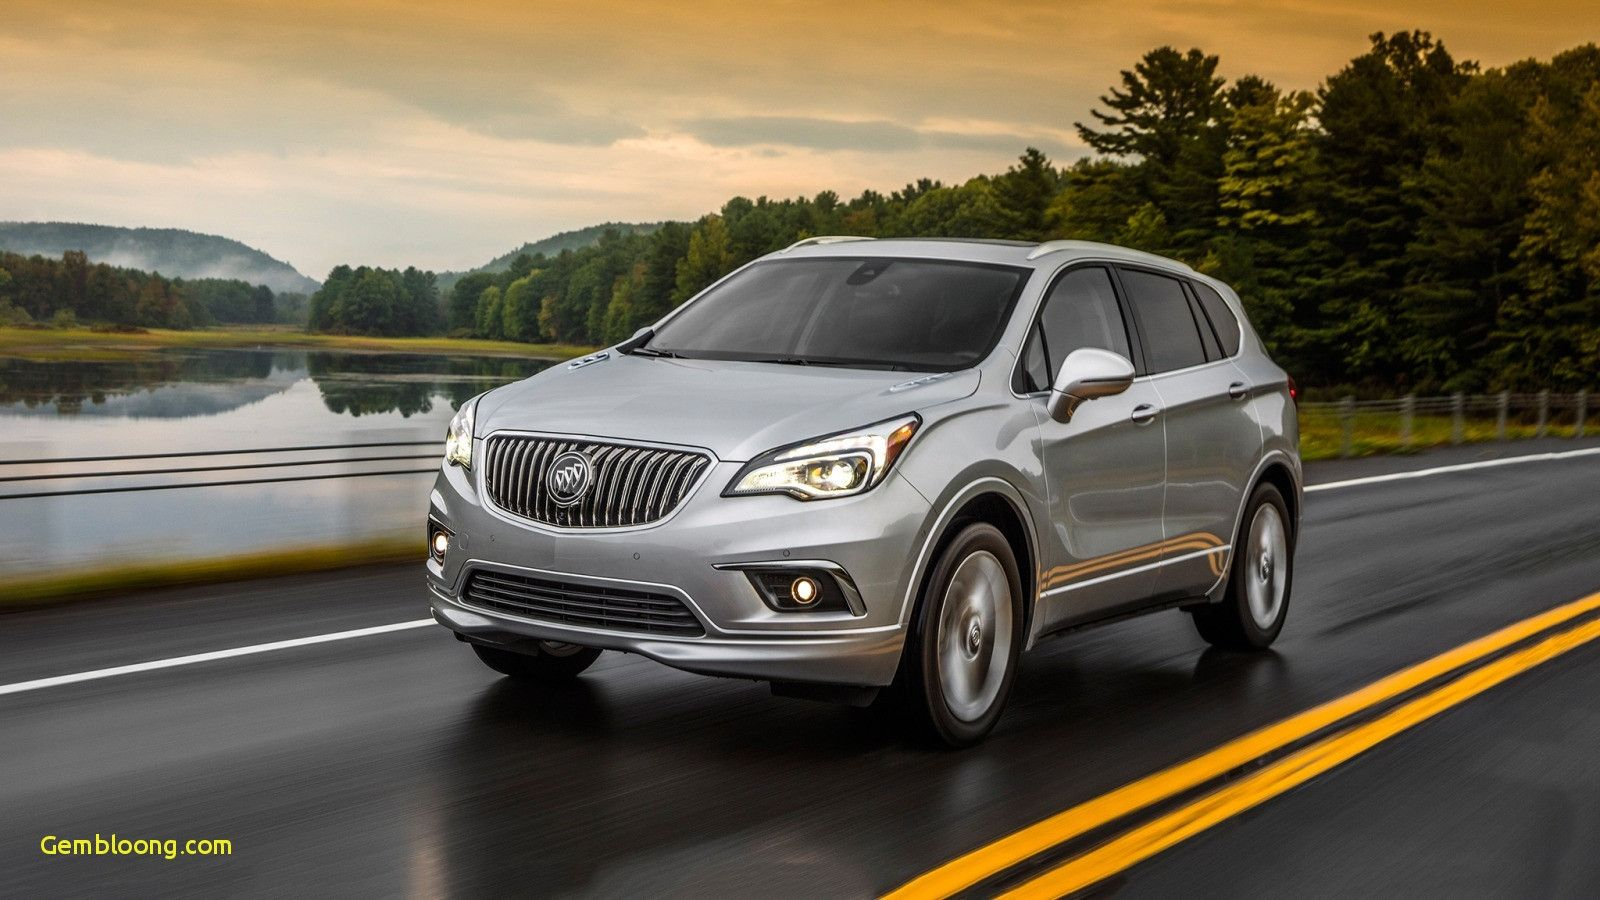 2020 Buick Envision Review Specs Hybrid Redesign Price And Photos